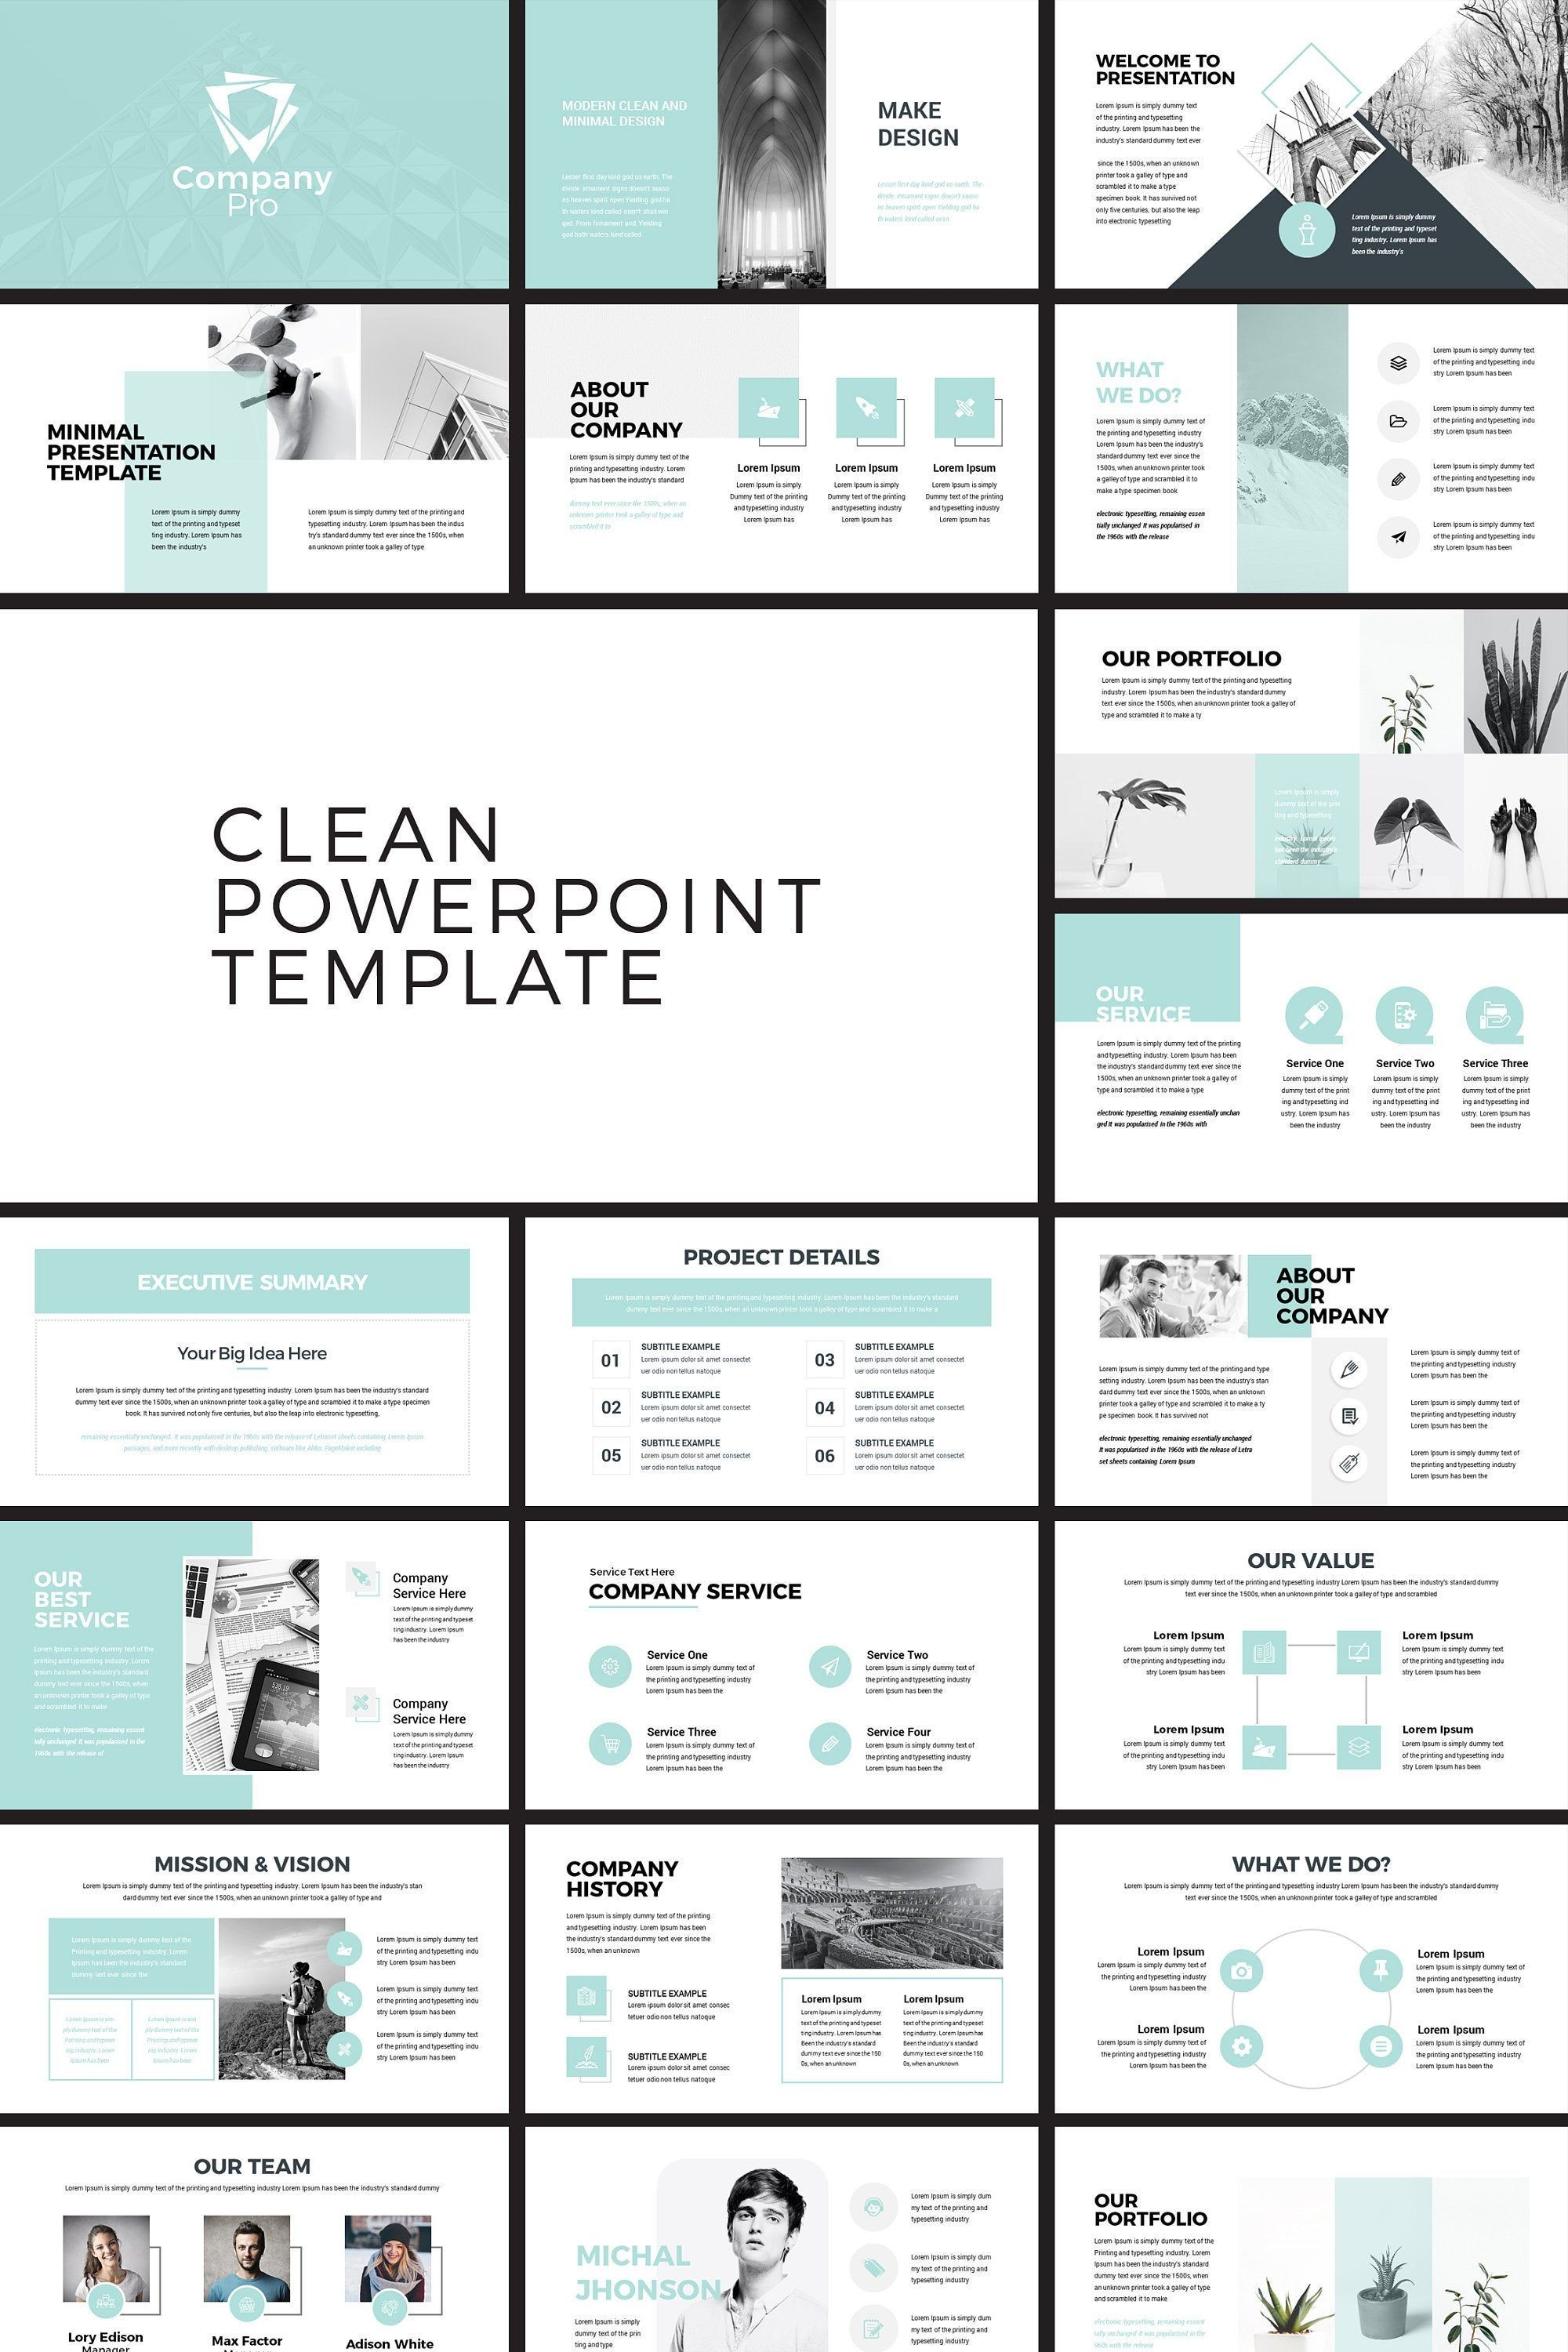 Company Pro Clean Business PowerPoint Presentation Template